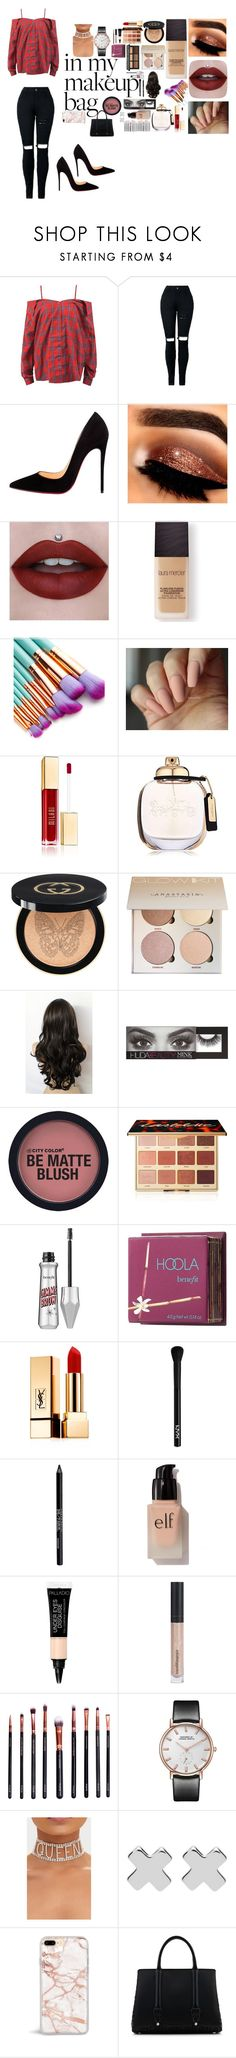 """date time"" by melissaqueen100 ❤ liked on Polyvore featuring Sans Souci, Christian Louboutin, Laura Mercier, Coach, Gucci, Huda Beauty, tarte, Benefit, Yves Saint Laurent and NYX"